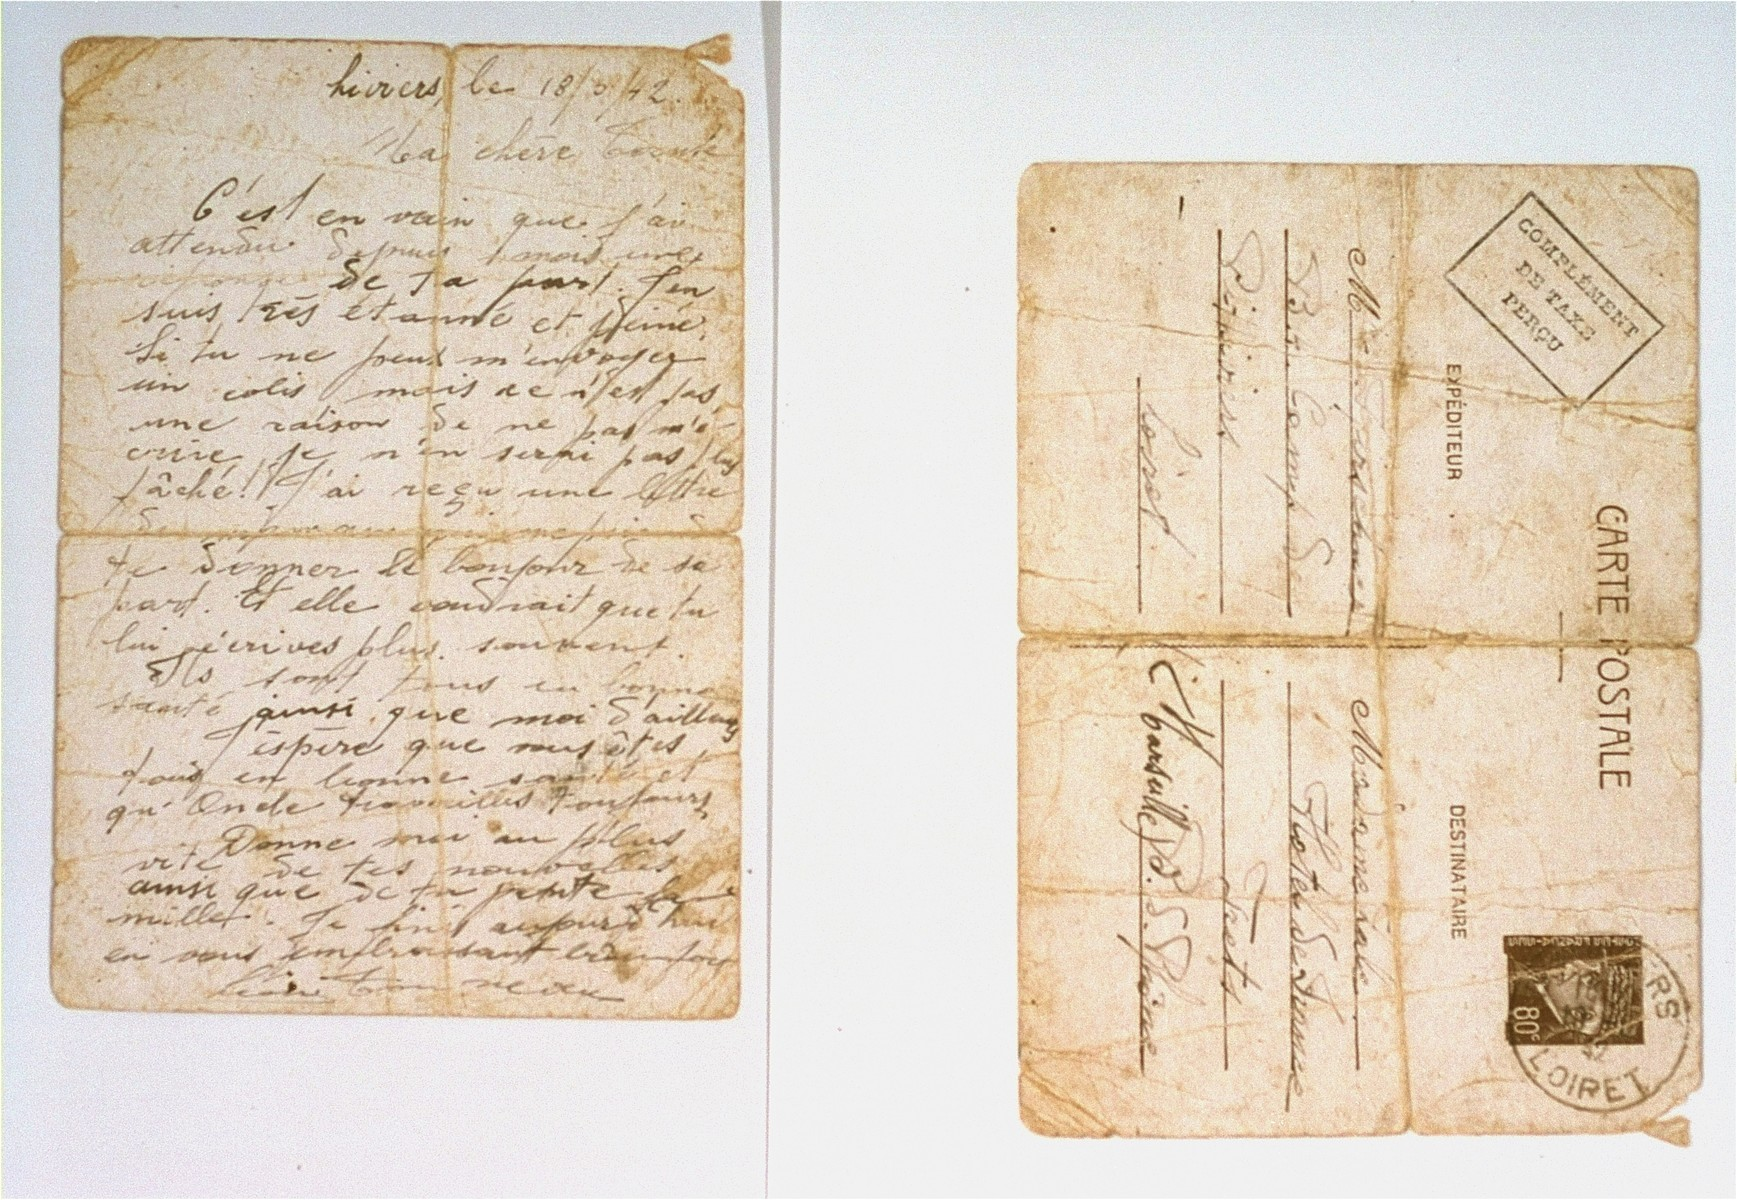 A letter from David Kierschner, a Belgian-Jewish prisoner in Pithiviers, to his brother-in-law, David Majer Zalc, c/o Madame Laville at the Hotel de France in Trets.